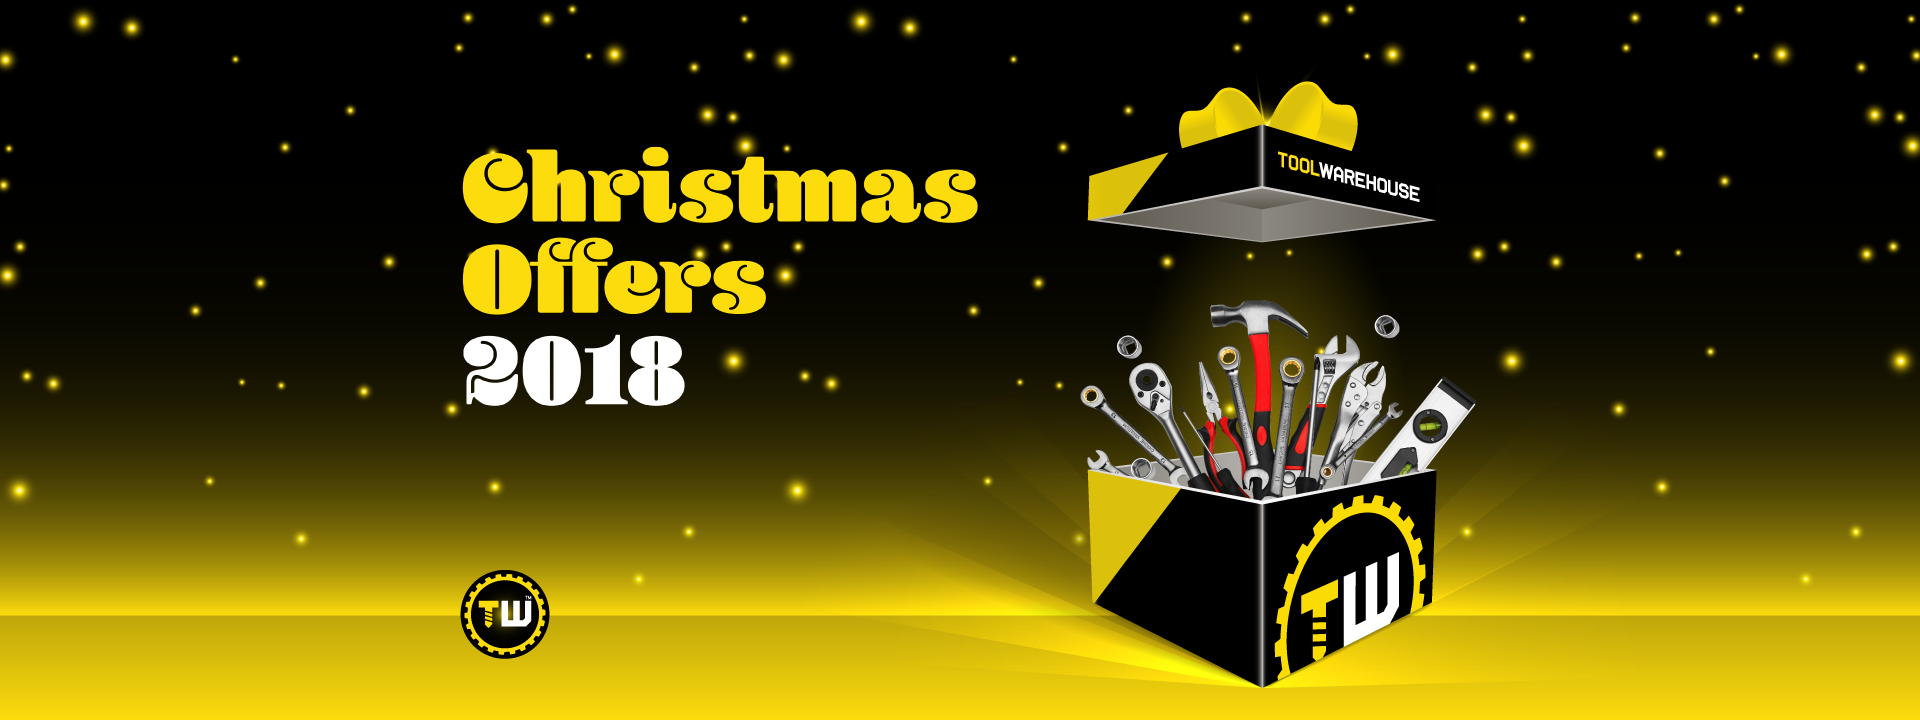 Christmas offers » 2018 » Toolwarehouse » Buy tools online!